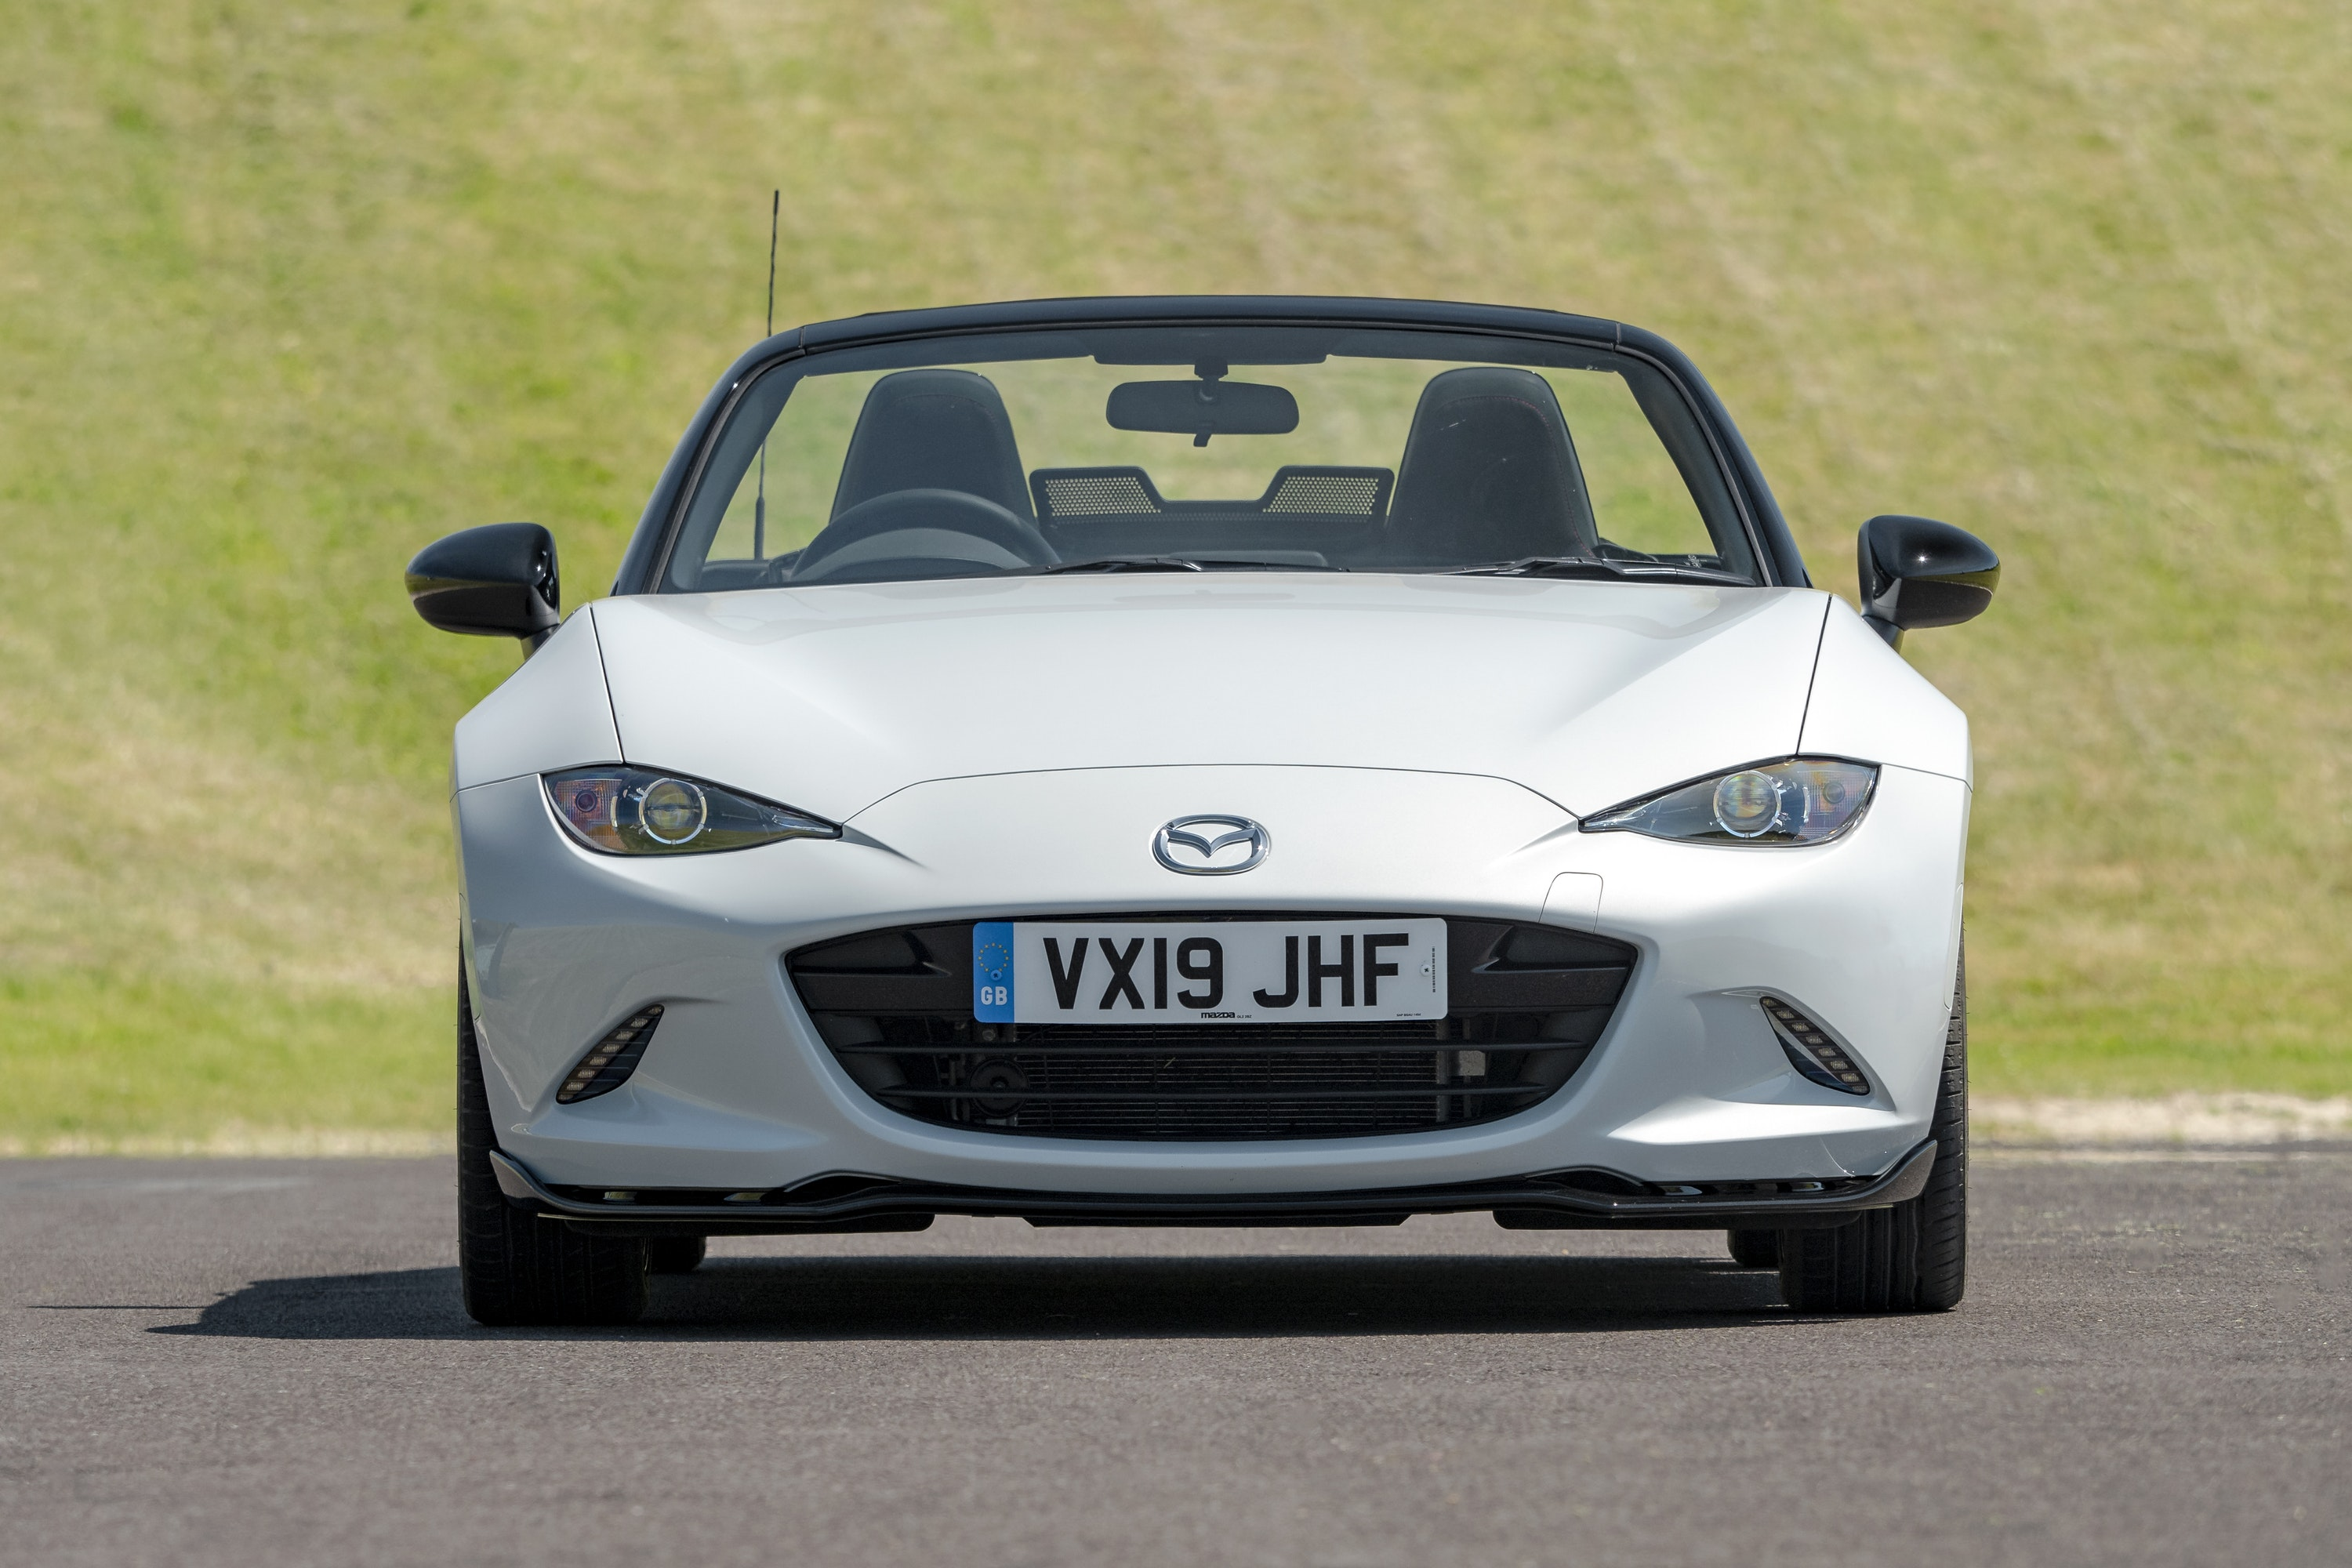 Front view of the Mazda MX-5